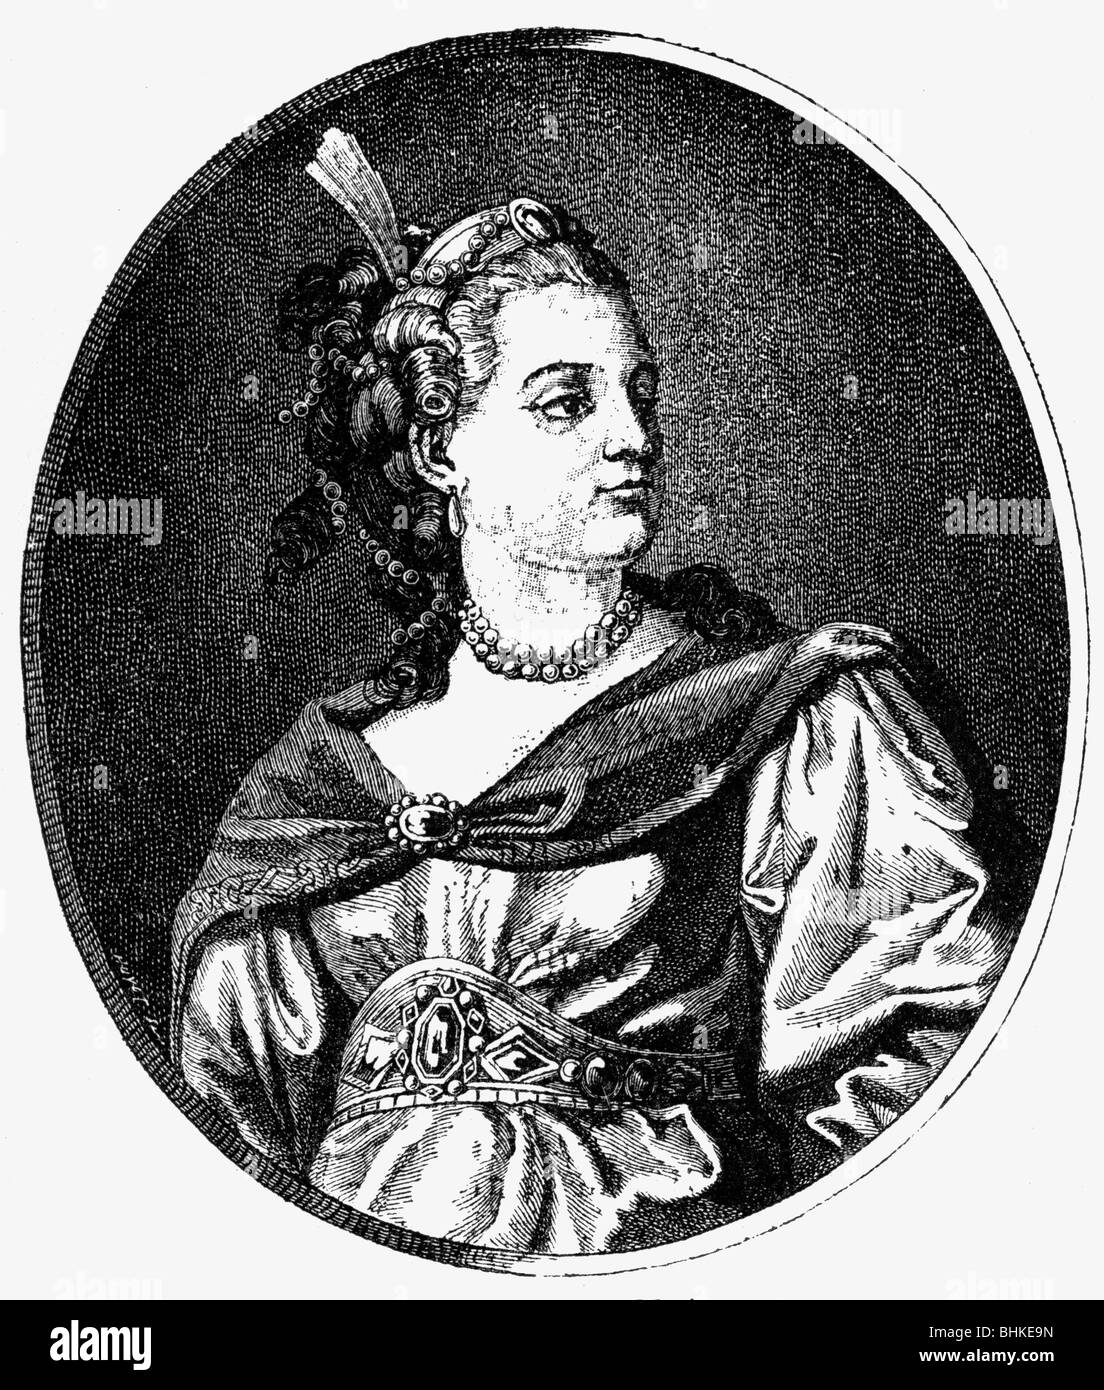 Clarion, Claire, 25.1.1723 - 18.1.1803, French actress, portrait, wood engraving after Schenau, 1766, , Additional - Stock Image